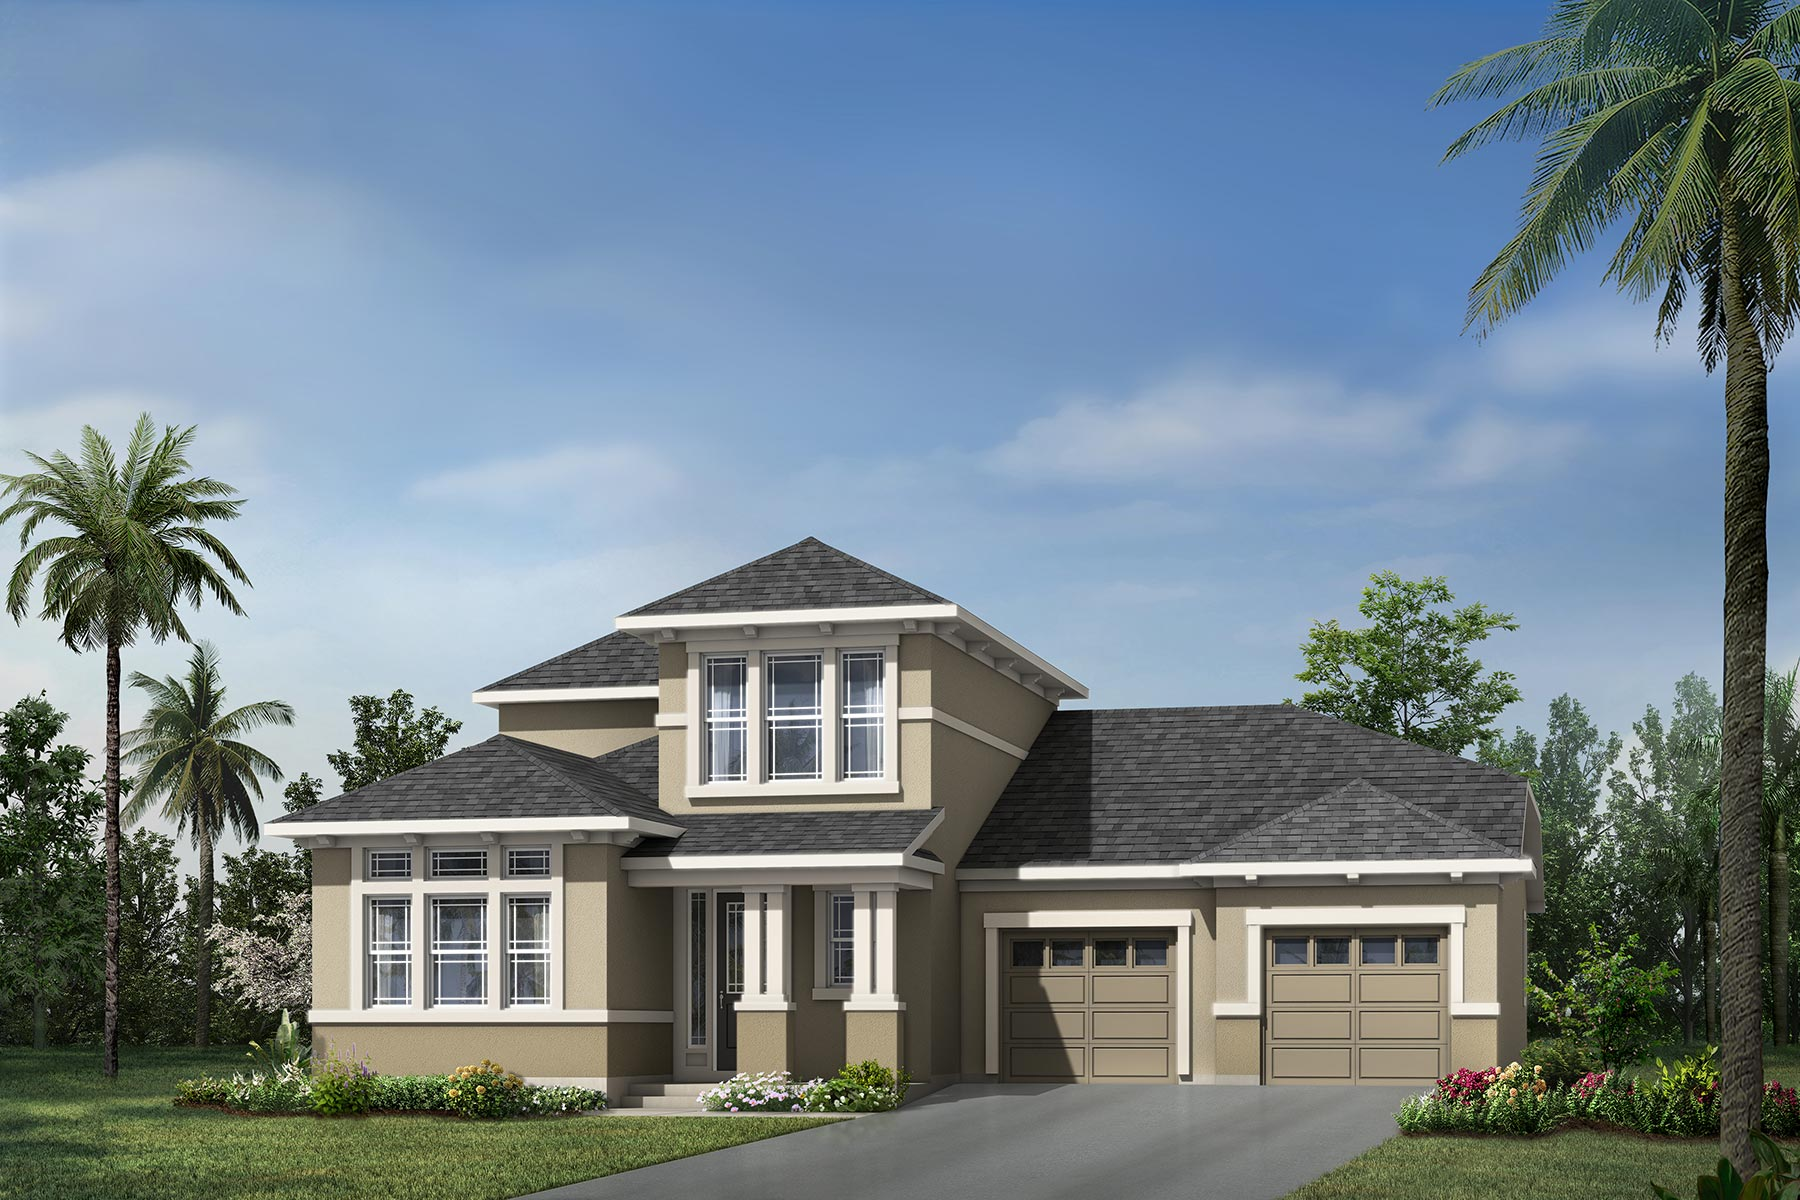 Watermark Plan Elevation Front at Meridian Parks in Orlando Florida by Mattamy Homes